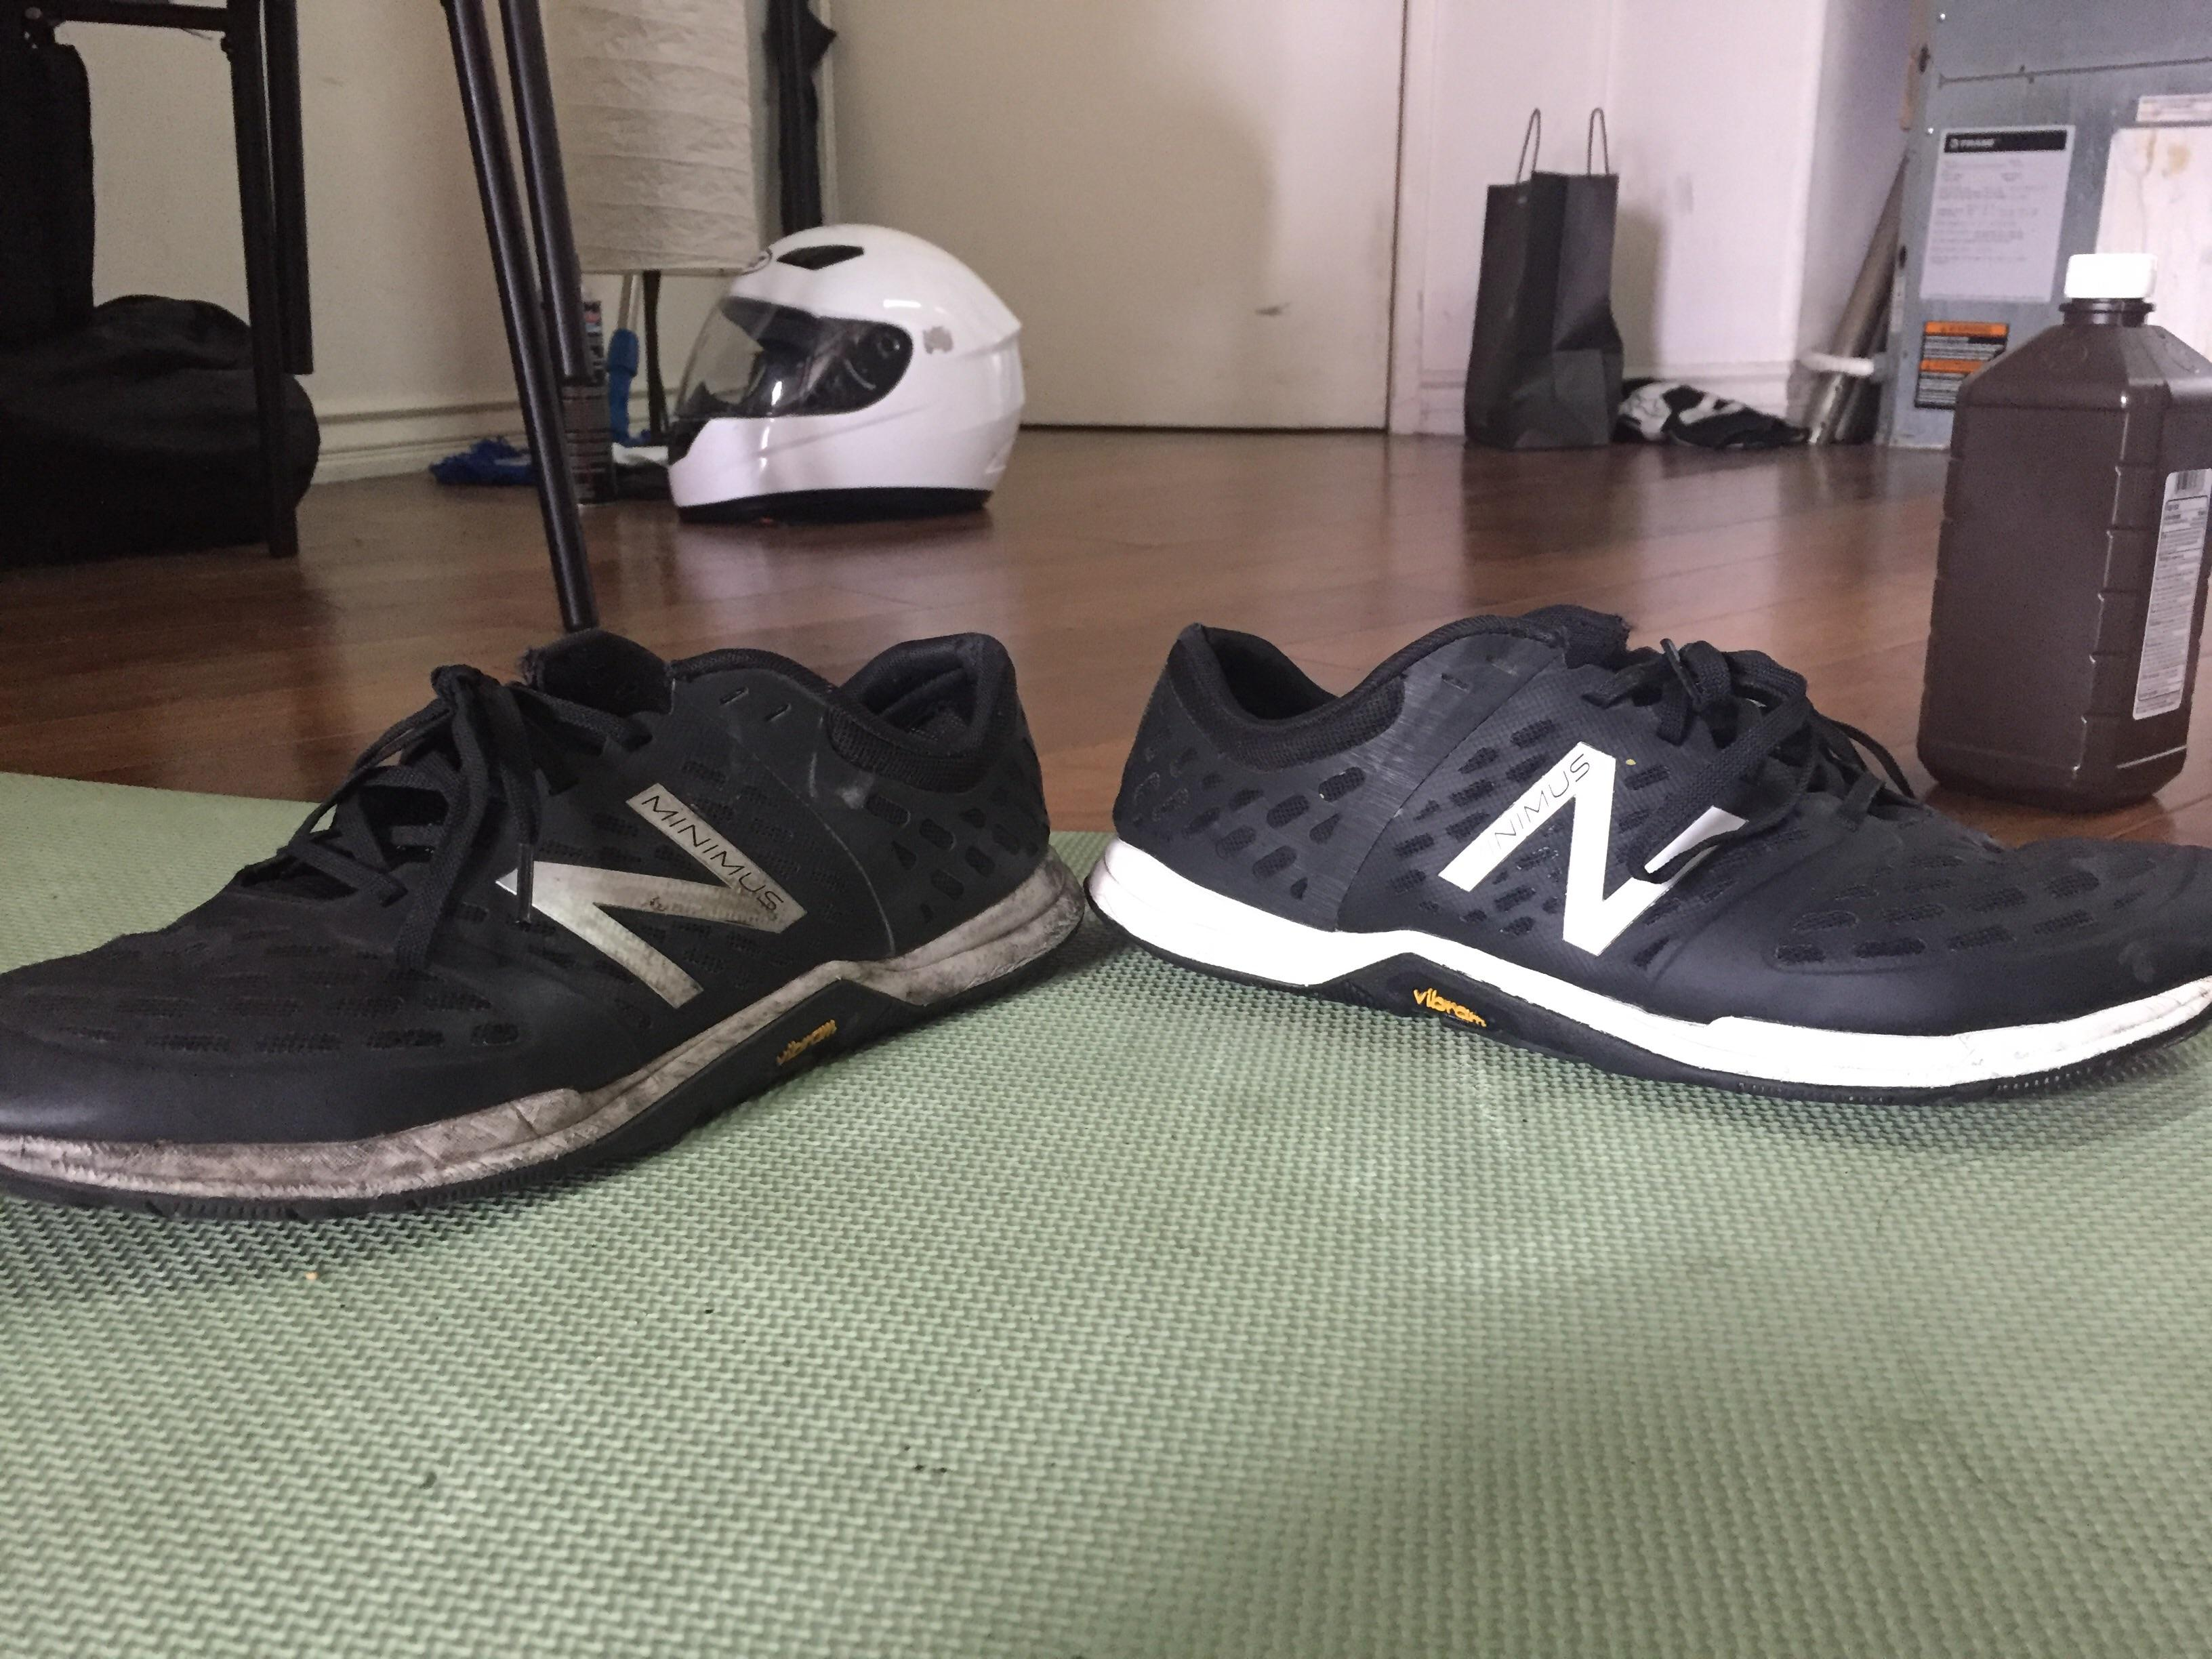 My gym shoes after a serious deep clean, 1/2 tablespoon hydrogen peroxide, (Peroxide/Baking ...